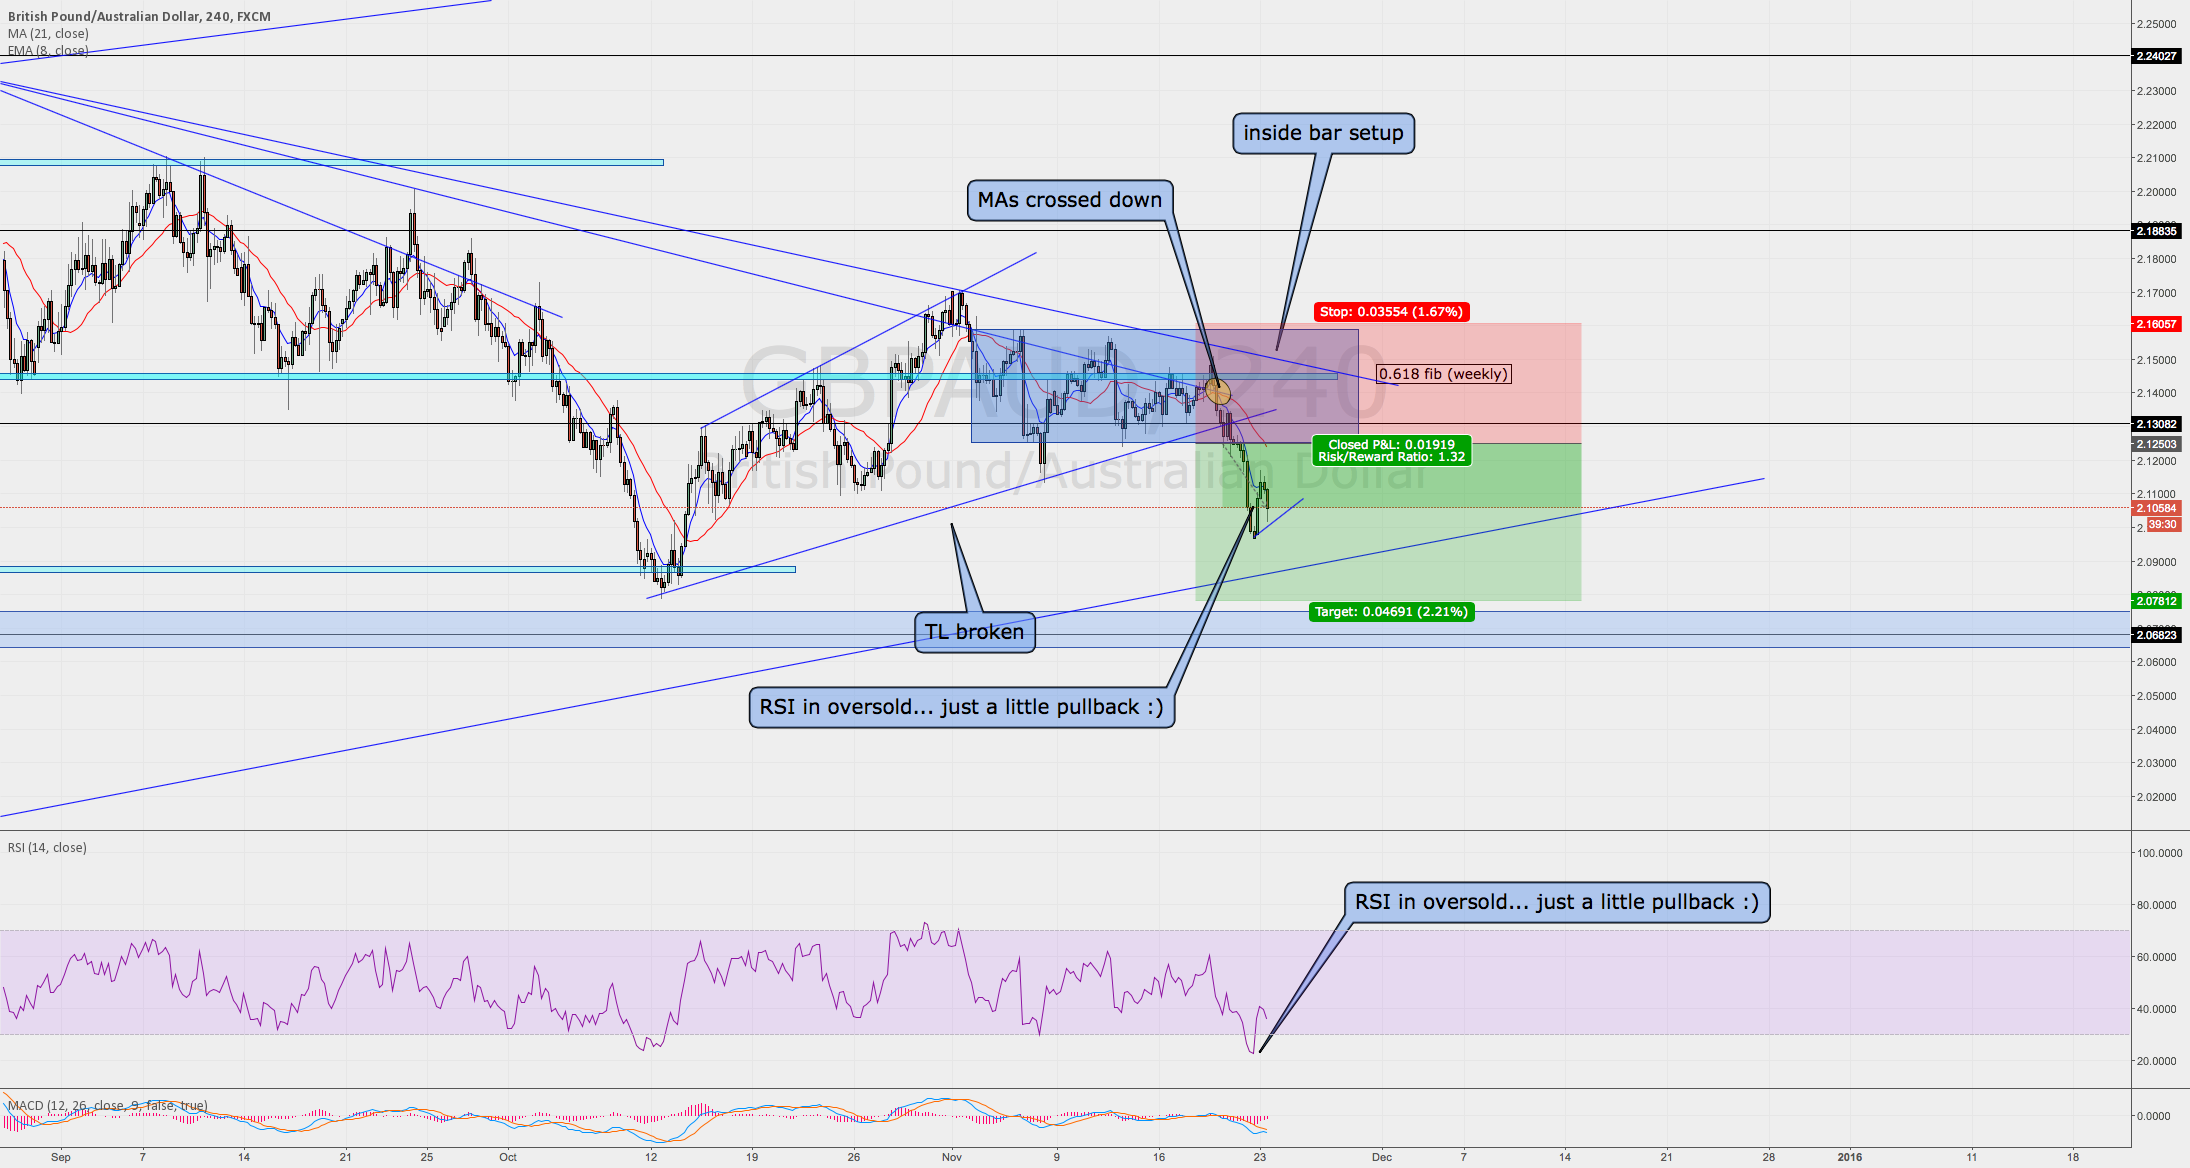 GBPUSD good short setup